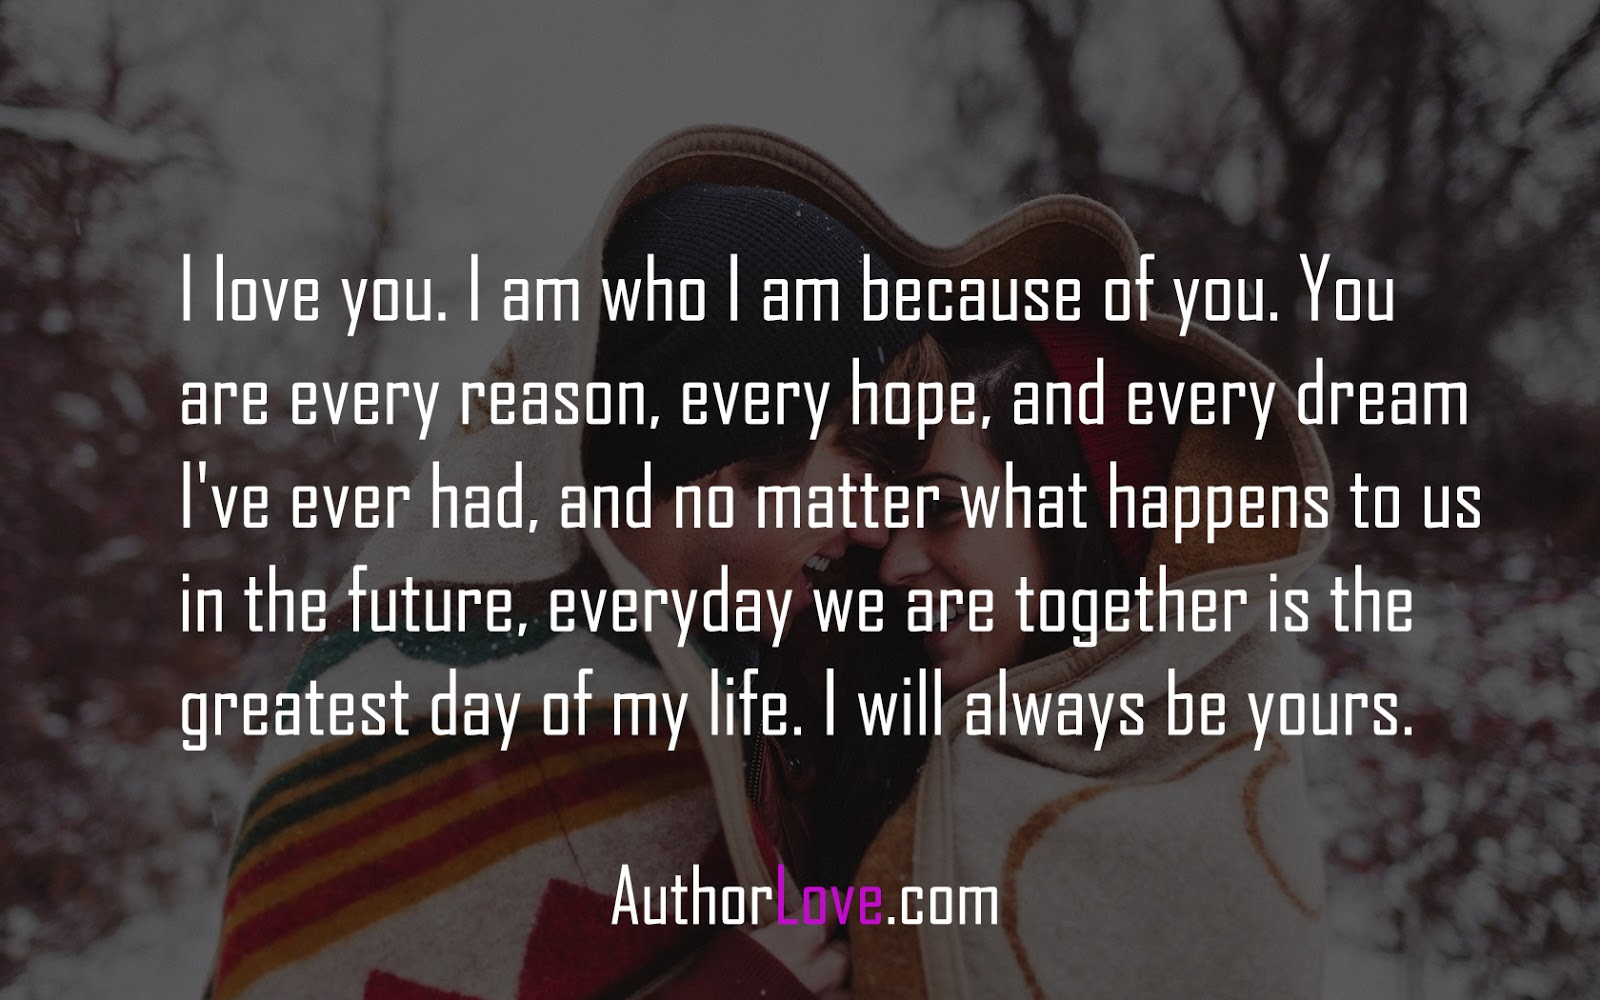 Love Quotes For Us I Love Youi Am Who I Am Because Of You  Love Quotes  Author Love